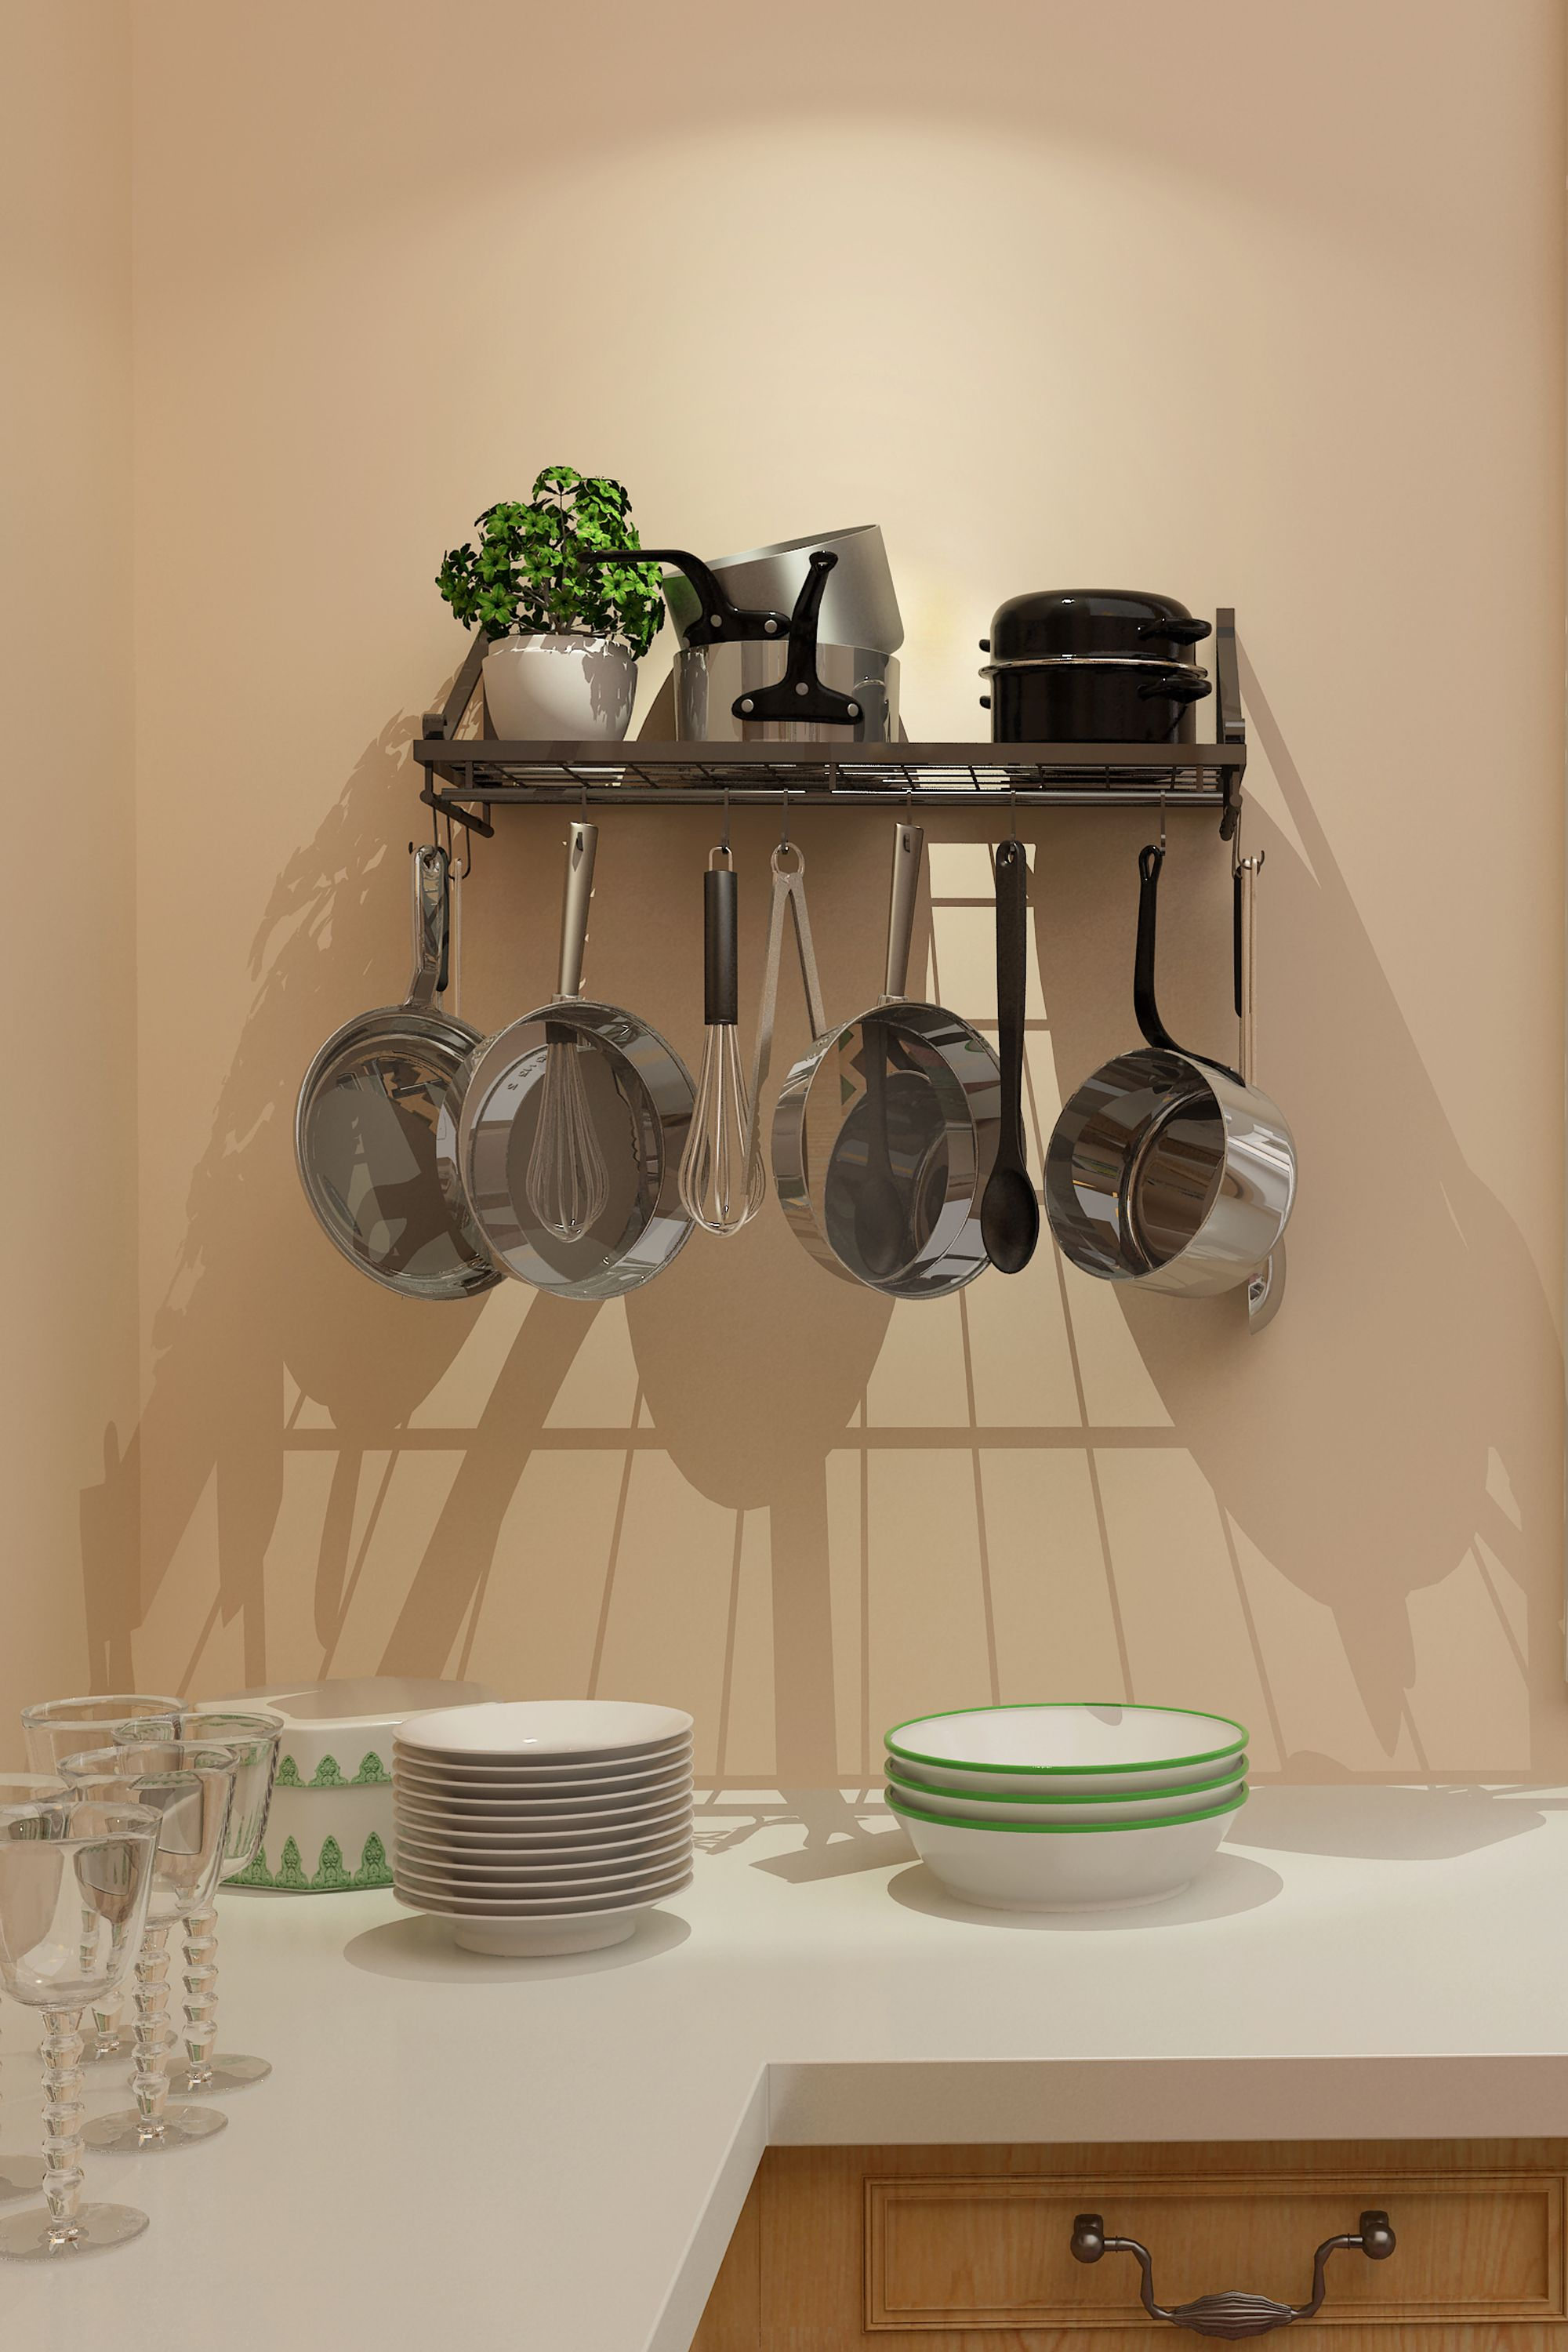 Pot Racks In A Corner Without Upper Cabinet Unobtrusive But Great Make The Best Use Of Storage Space Your Kitchen 39 9 Cool Kitchens Kitchen Decor Pot Rack